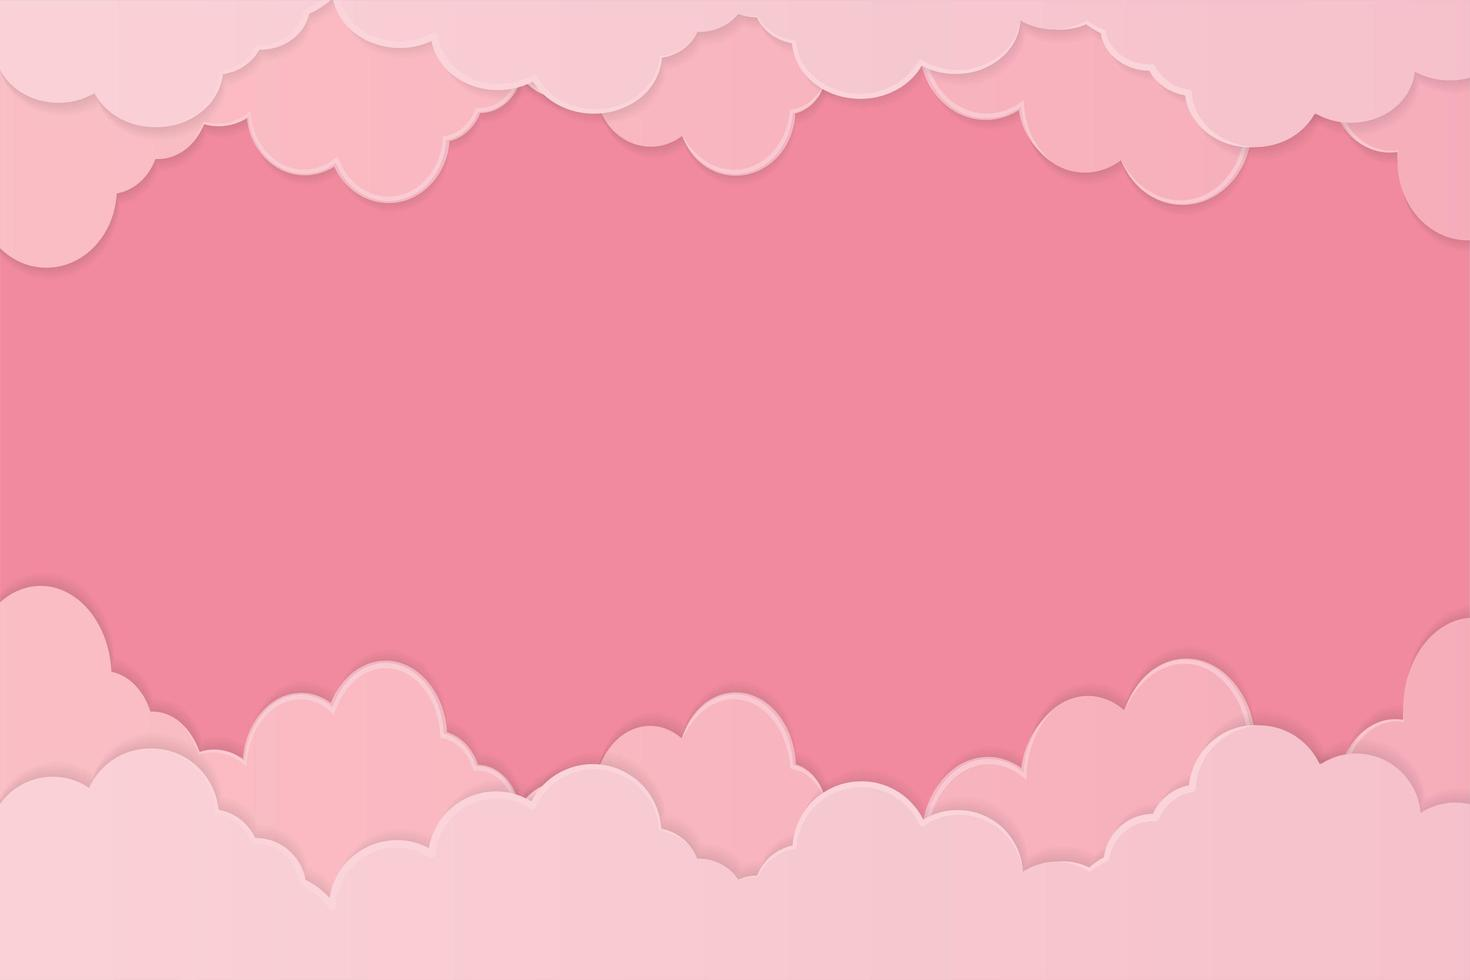 Pink Paper Style Cloud Background vector